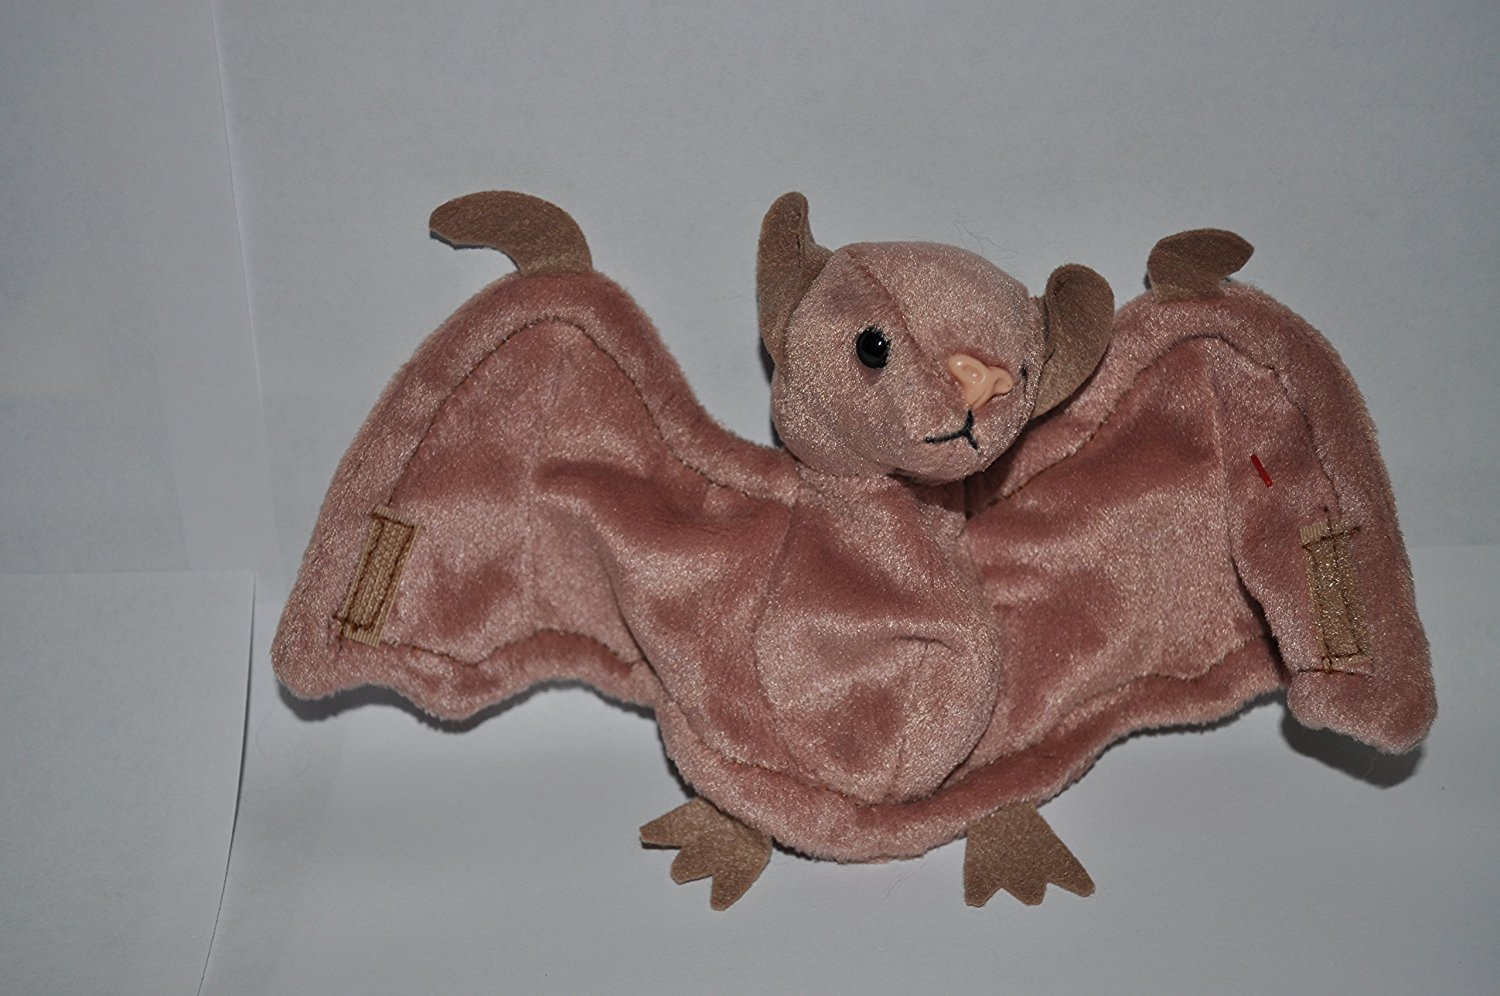 f9780e15494 Get Quotations · Batty the Bat (Brown Version Pink Nose) - Ty Beanie Babies